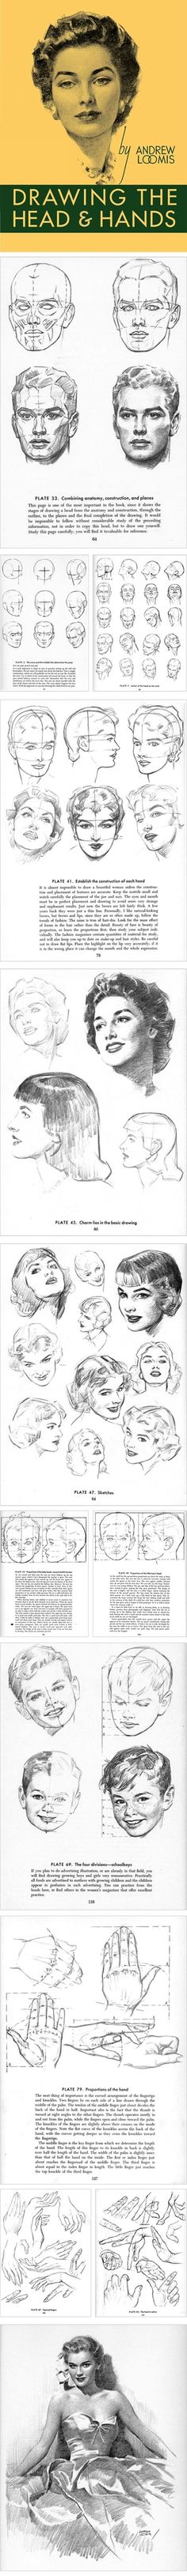 How to draw faces and hands - the most amazing book! recommended by my university to get this book. And here it is! Fantastic.